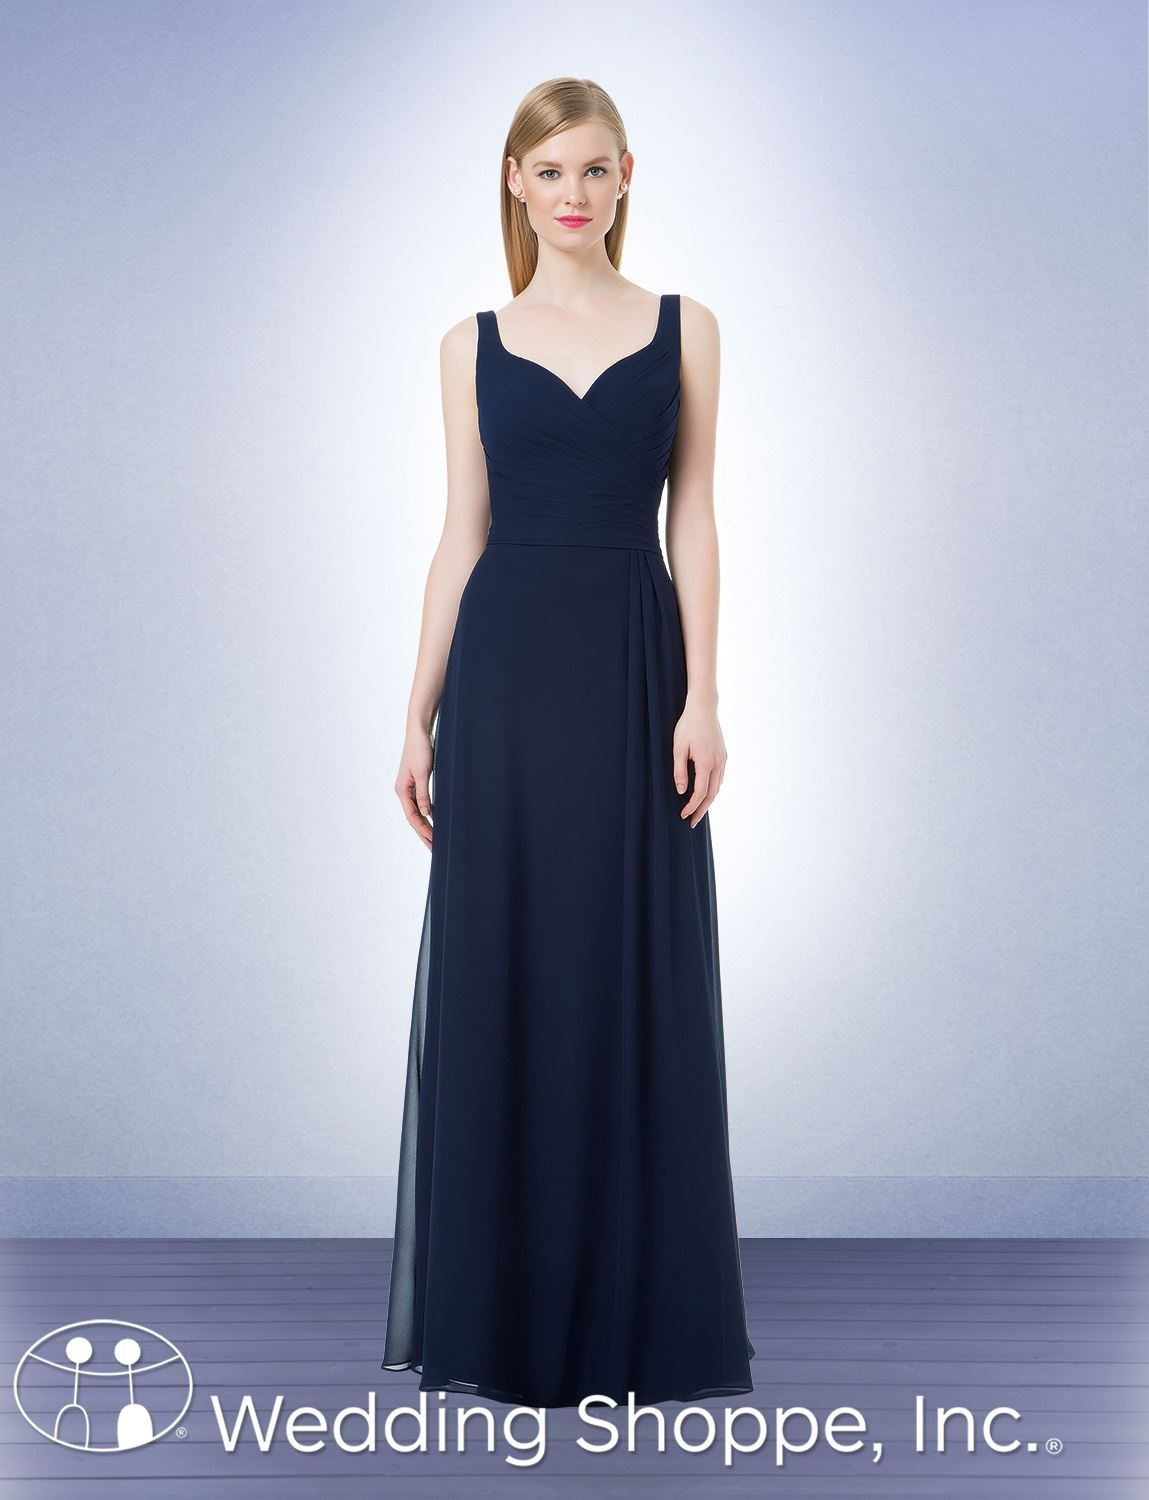 720dde1dca Bill Levkoff 1213  Asymmetrical pleating begins at the bridesmaid dresses  deep curved sweetheart neckline and continues through the fitted bodice